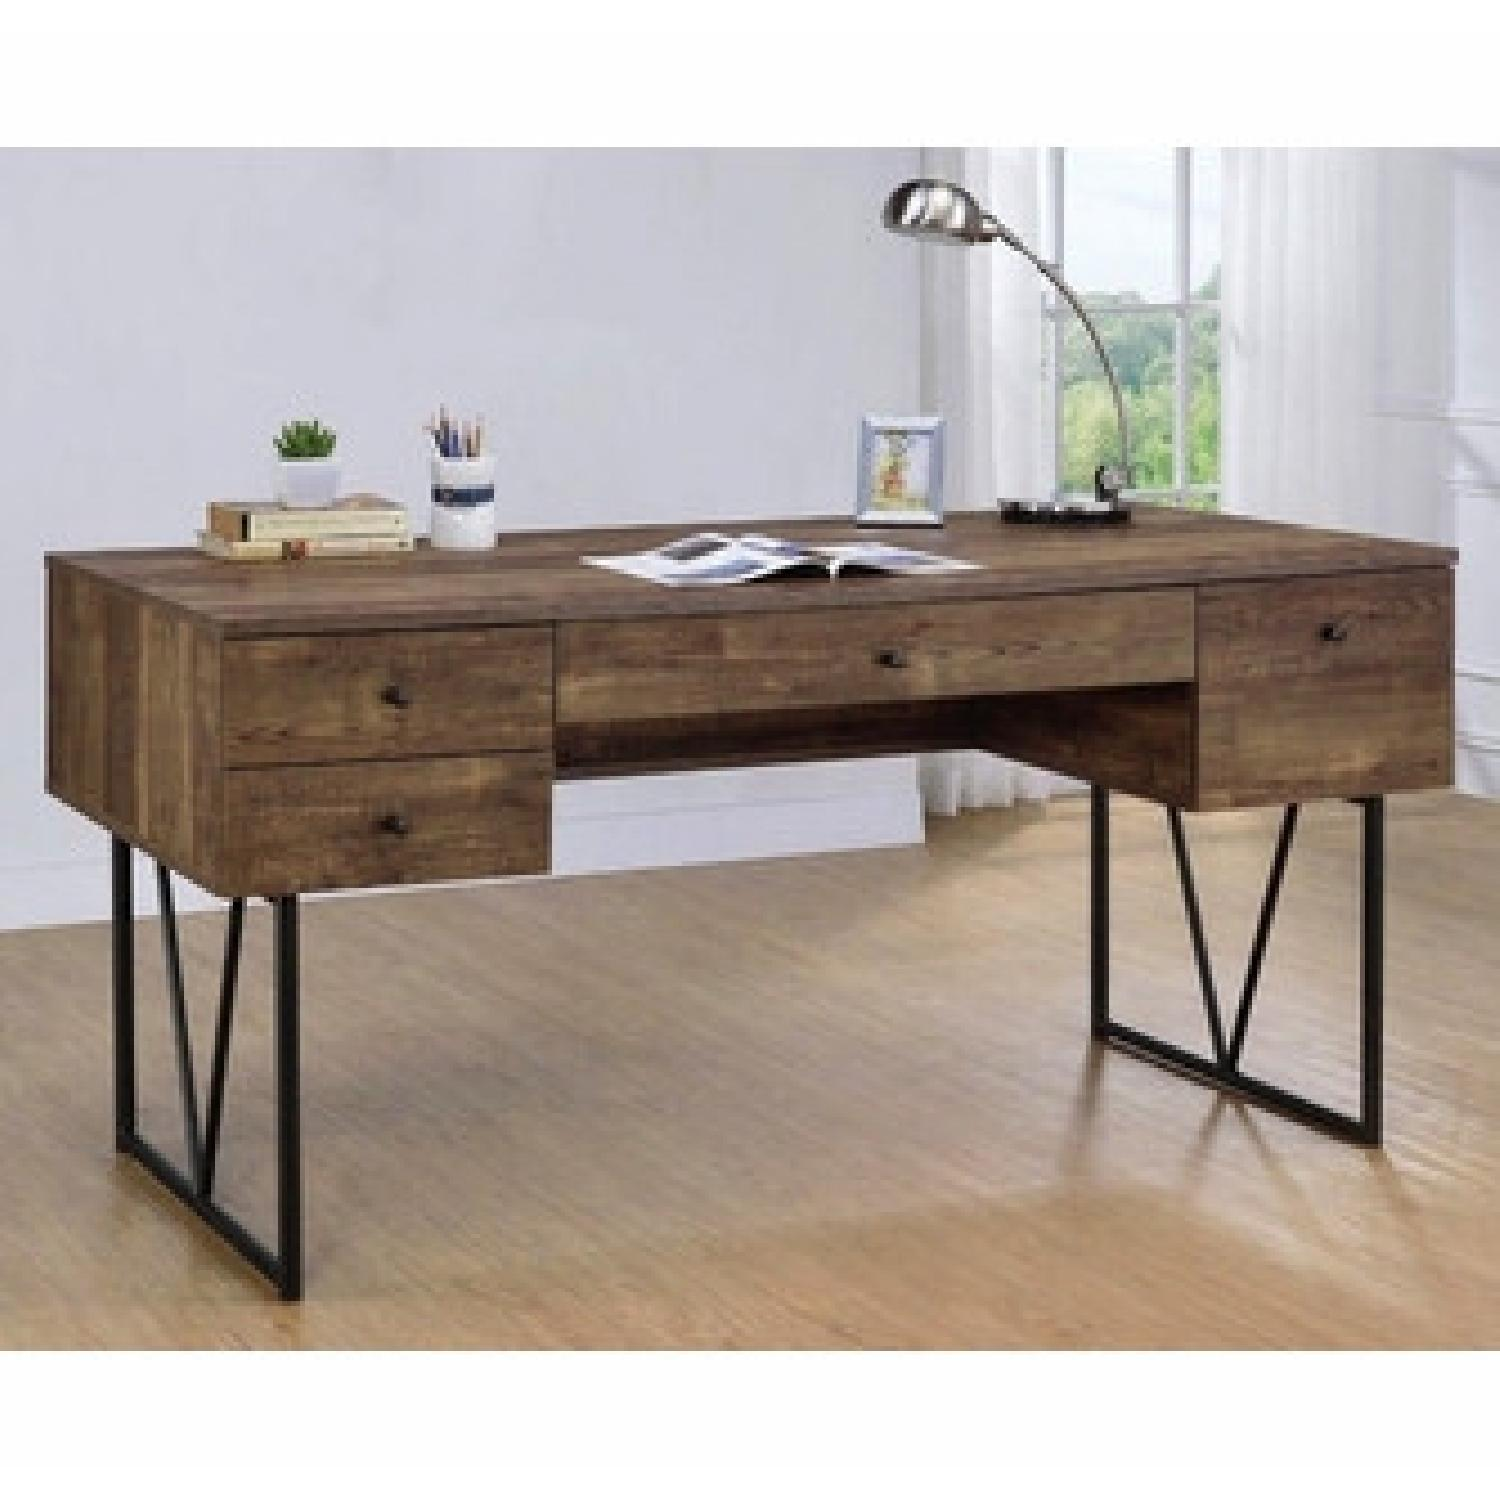 Rustic Oak Desk w/ Black Metal Frame Legs - image-2